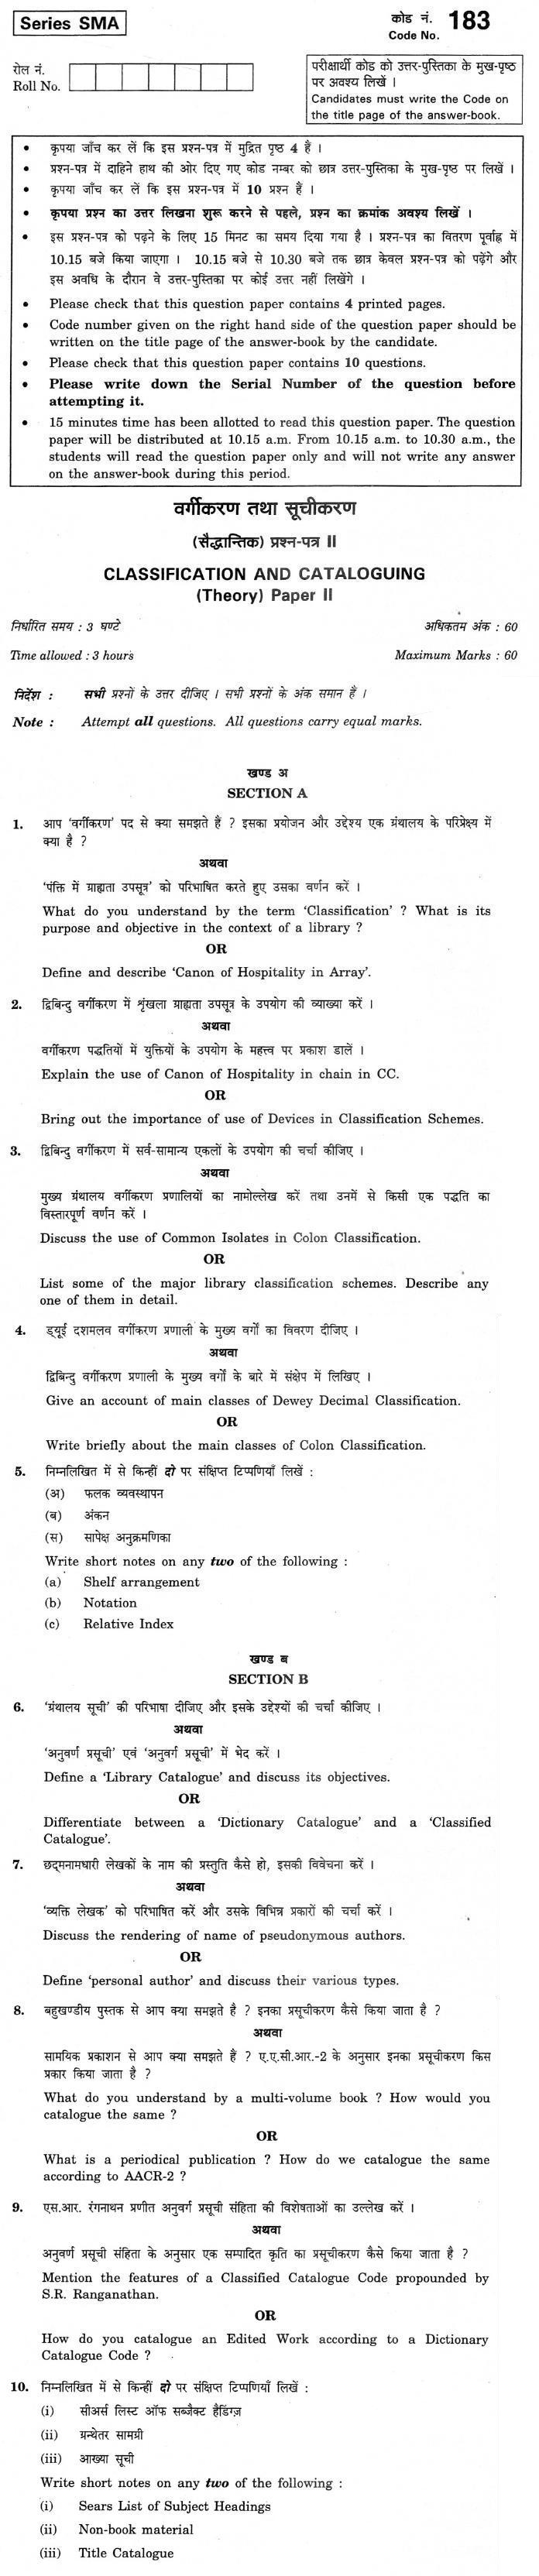 CBSE Class XII Previous Year Question Paper 2012 Classification and Cataloguing Paper II